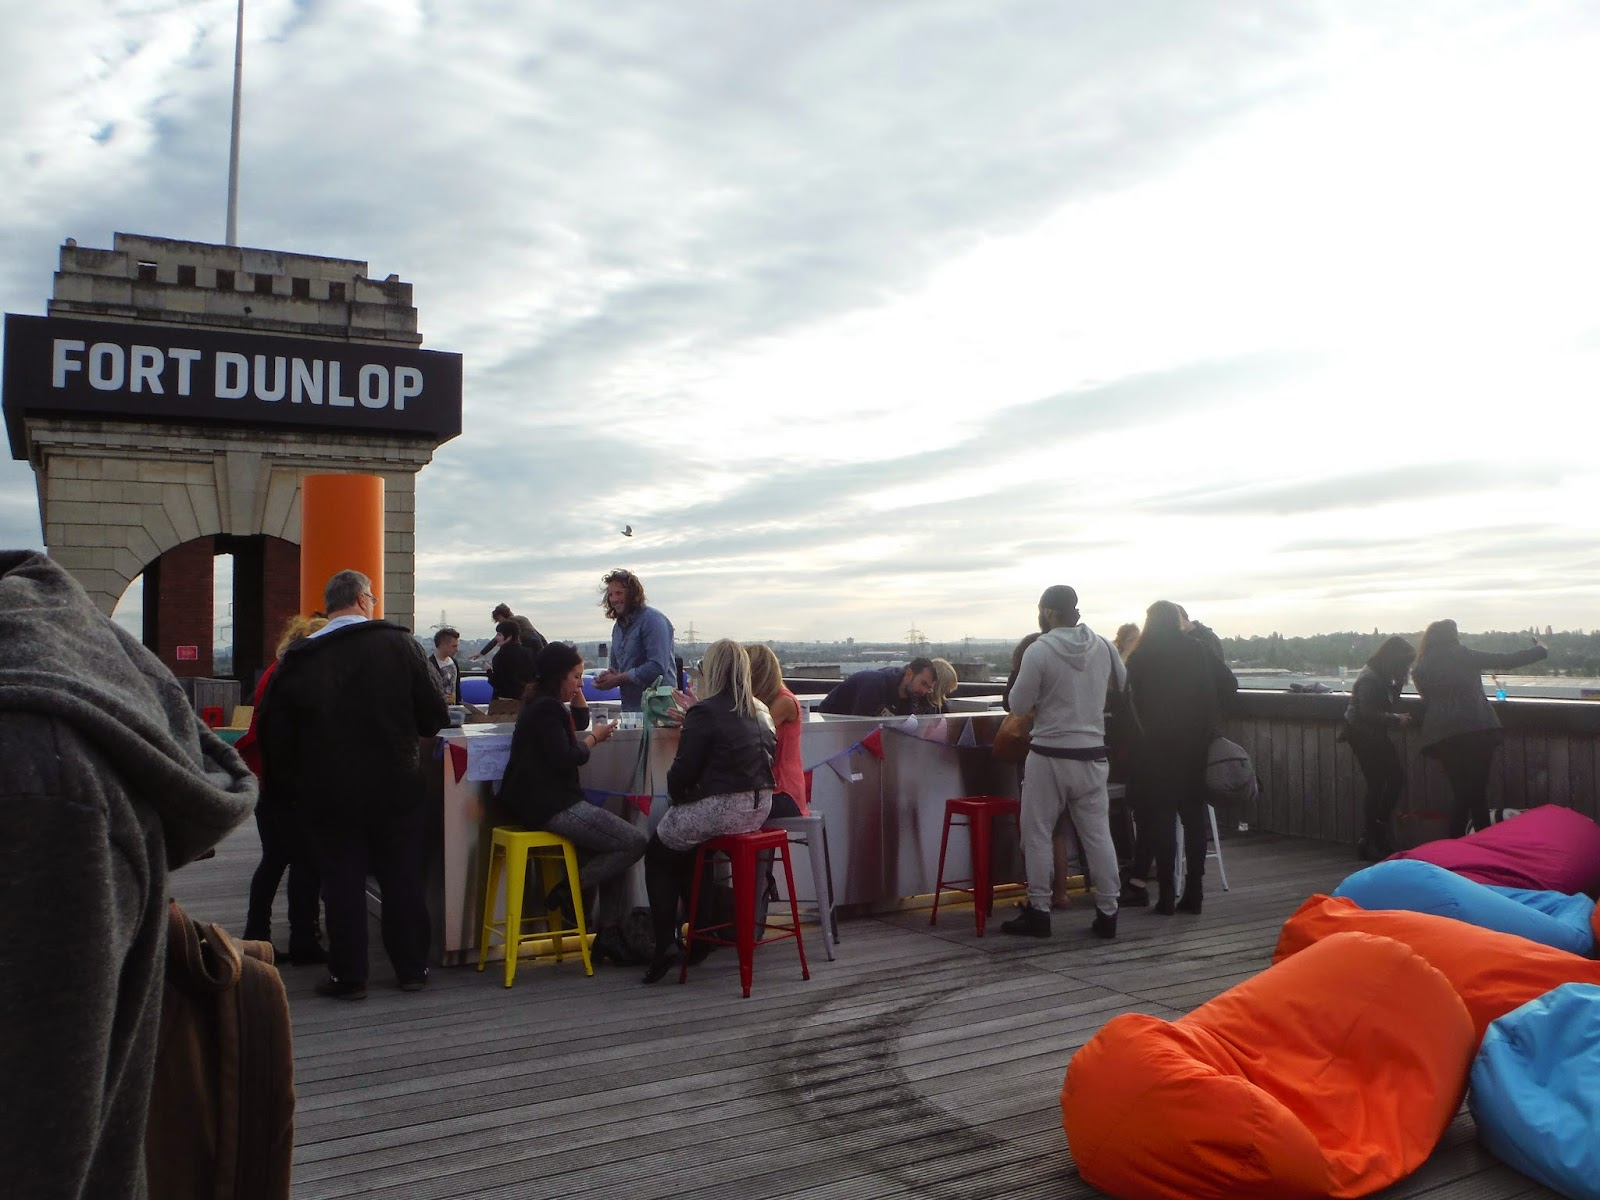 The Rooftop bar at foot dunlop